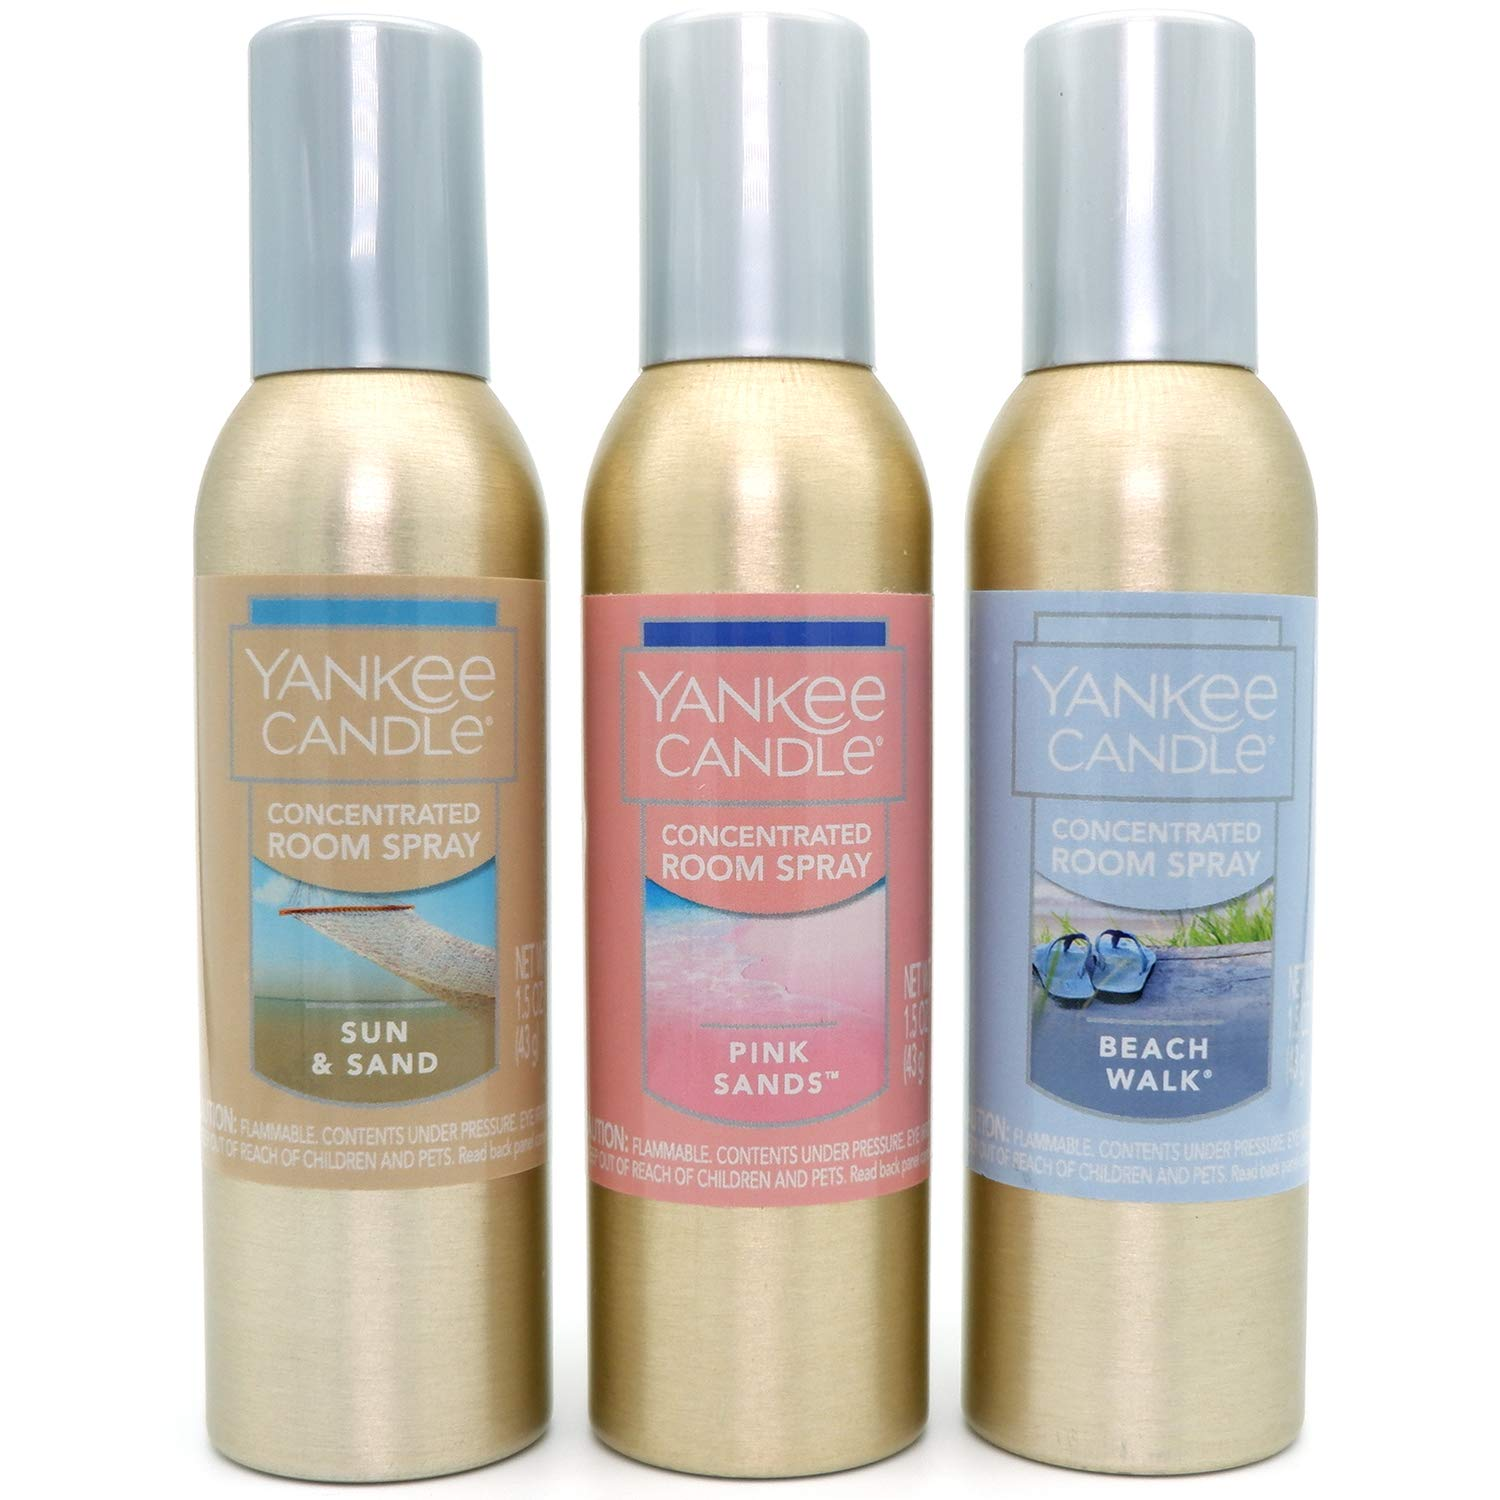 Yankee Candle Summer Favorites 3-Pack Concentrated Room Sprays (Sun and Sand, Pink Sand, Beach Walk)